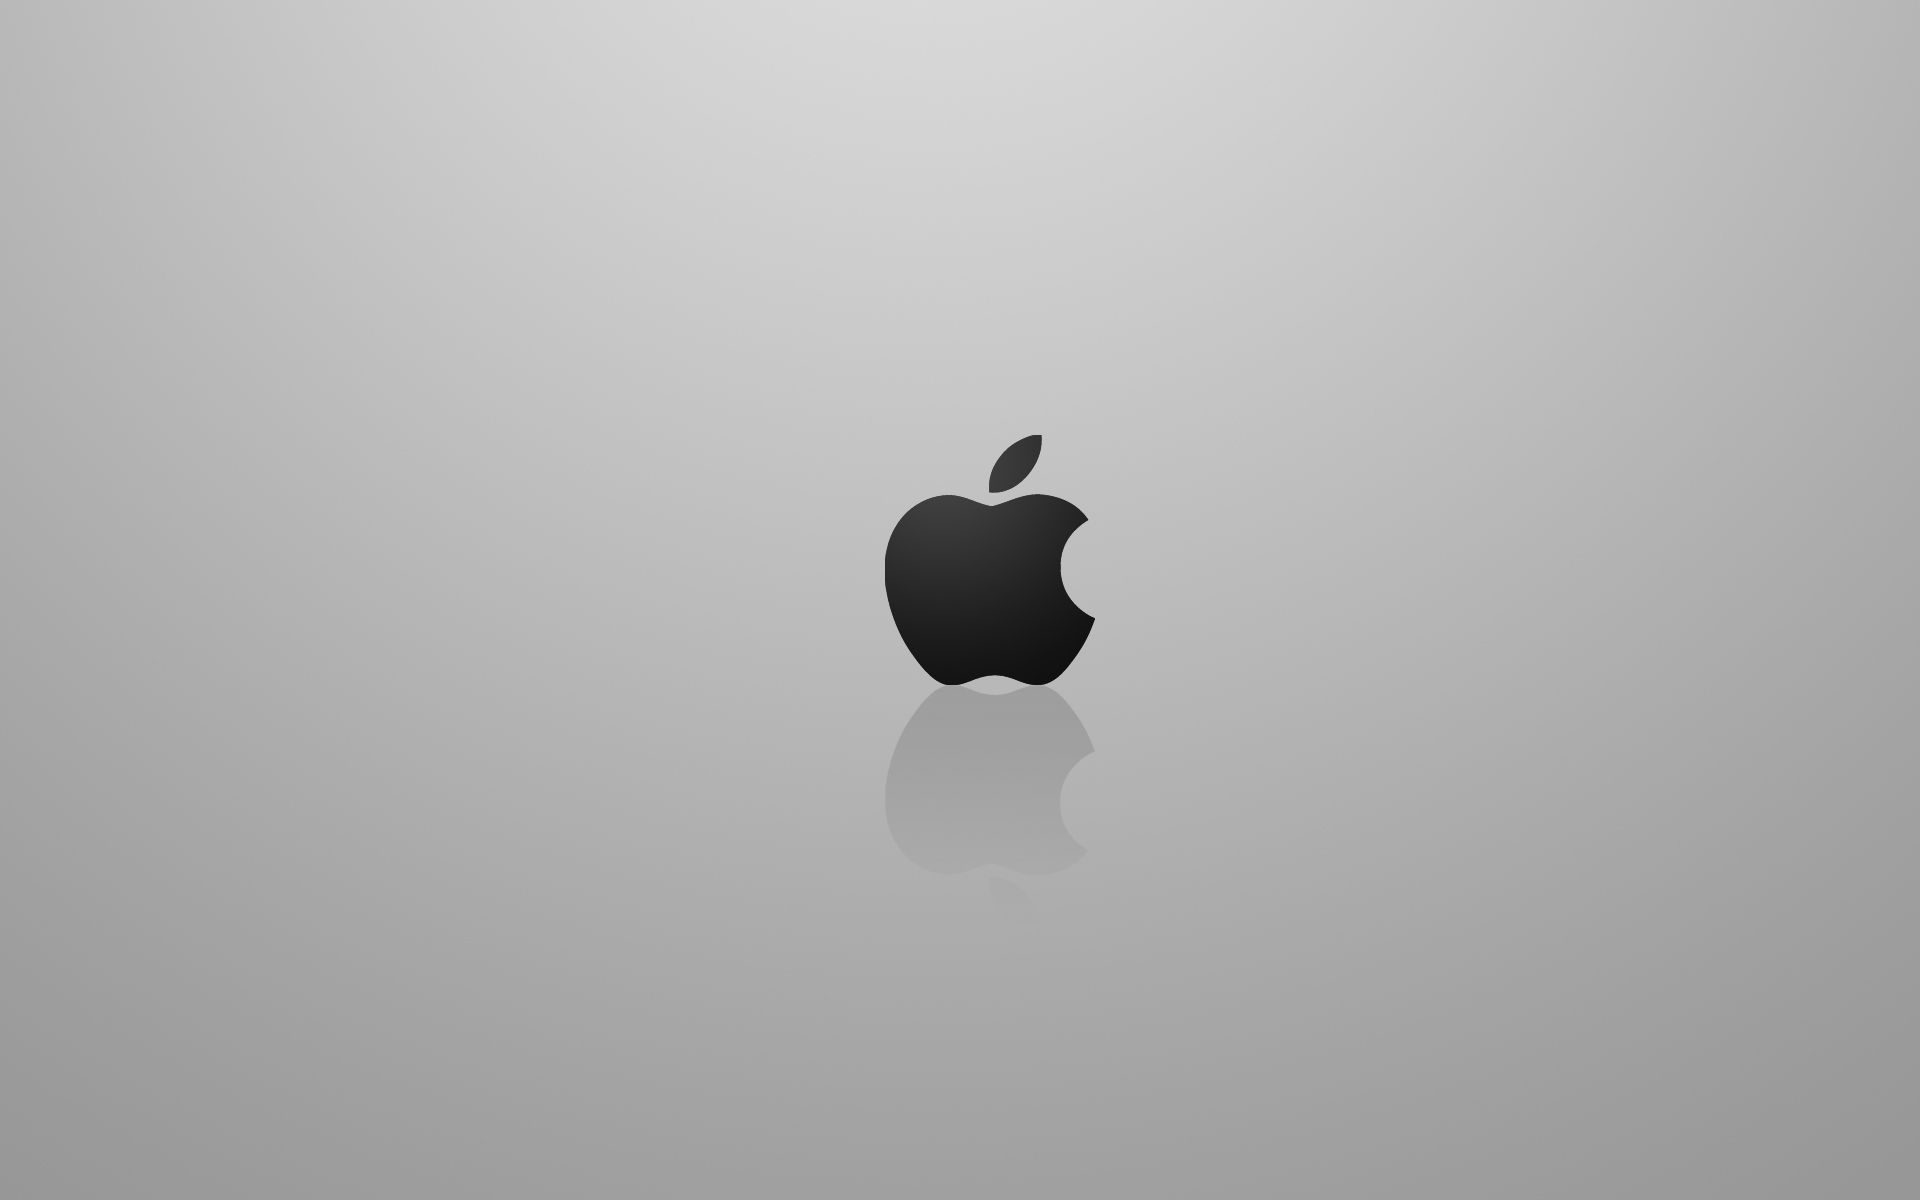 Apple Wallpaper Computer